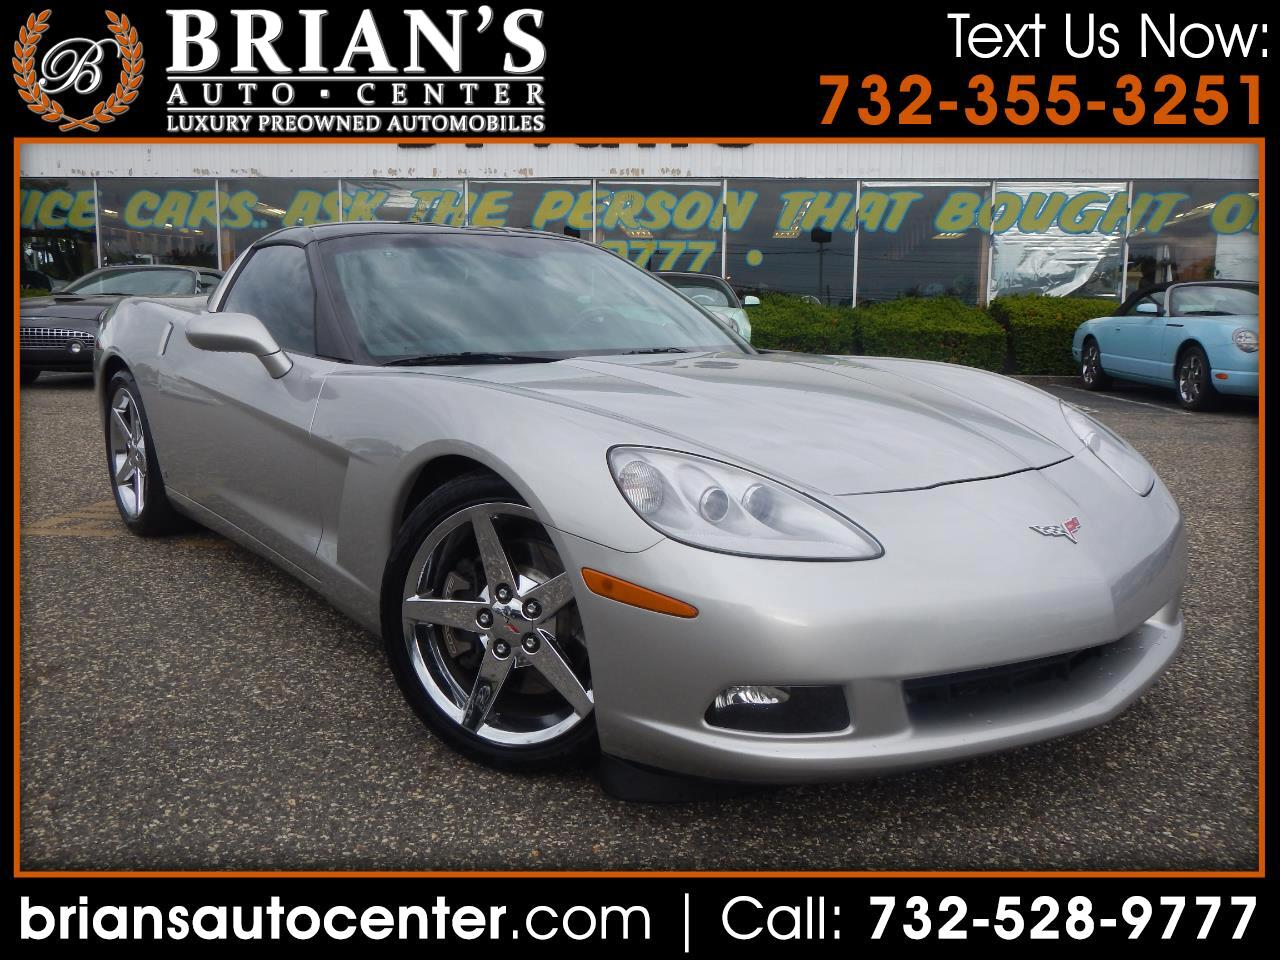 2007 Chevrolet Corvette Coupe - SUPERCHARGED!!!